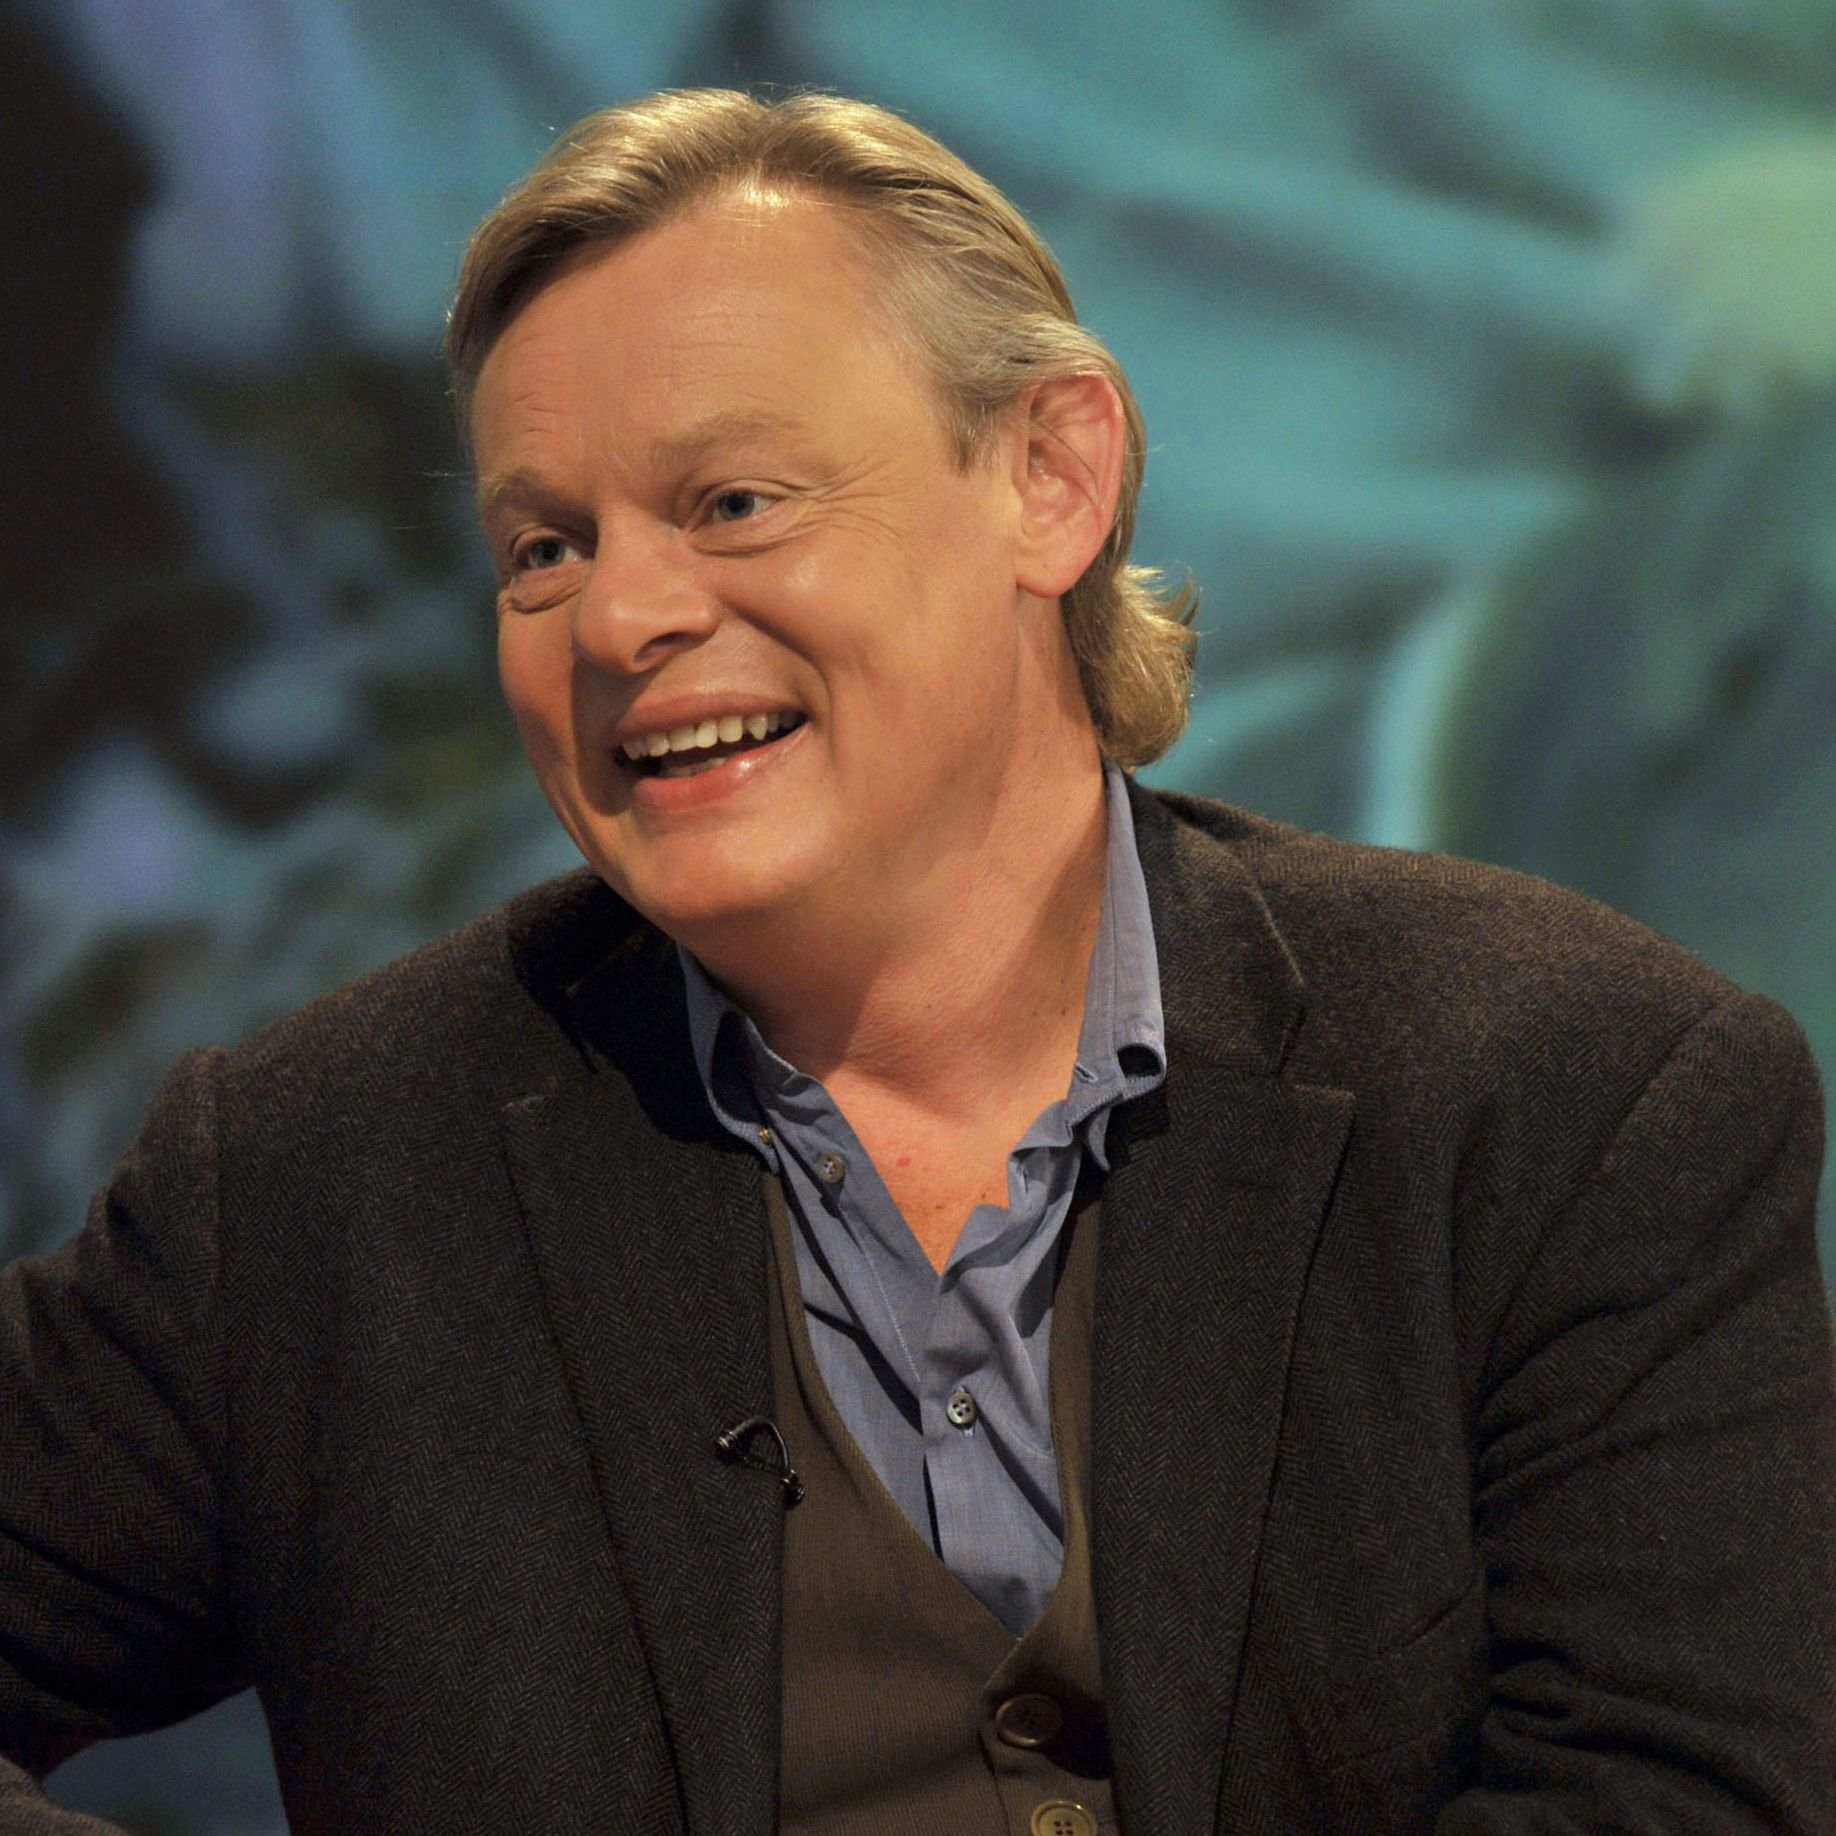 Martin Clunes appearing on BBC Breakfast, September 15th 2008. (Photo by Jeff Overs/BBC News & Current Affairs via Getty Images)